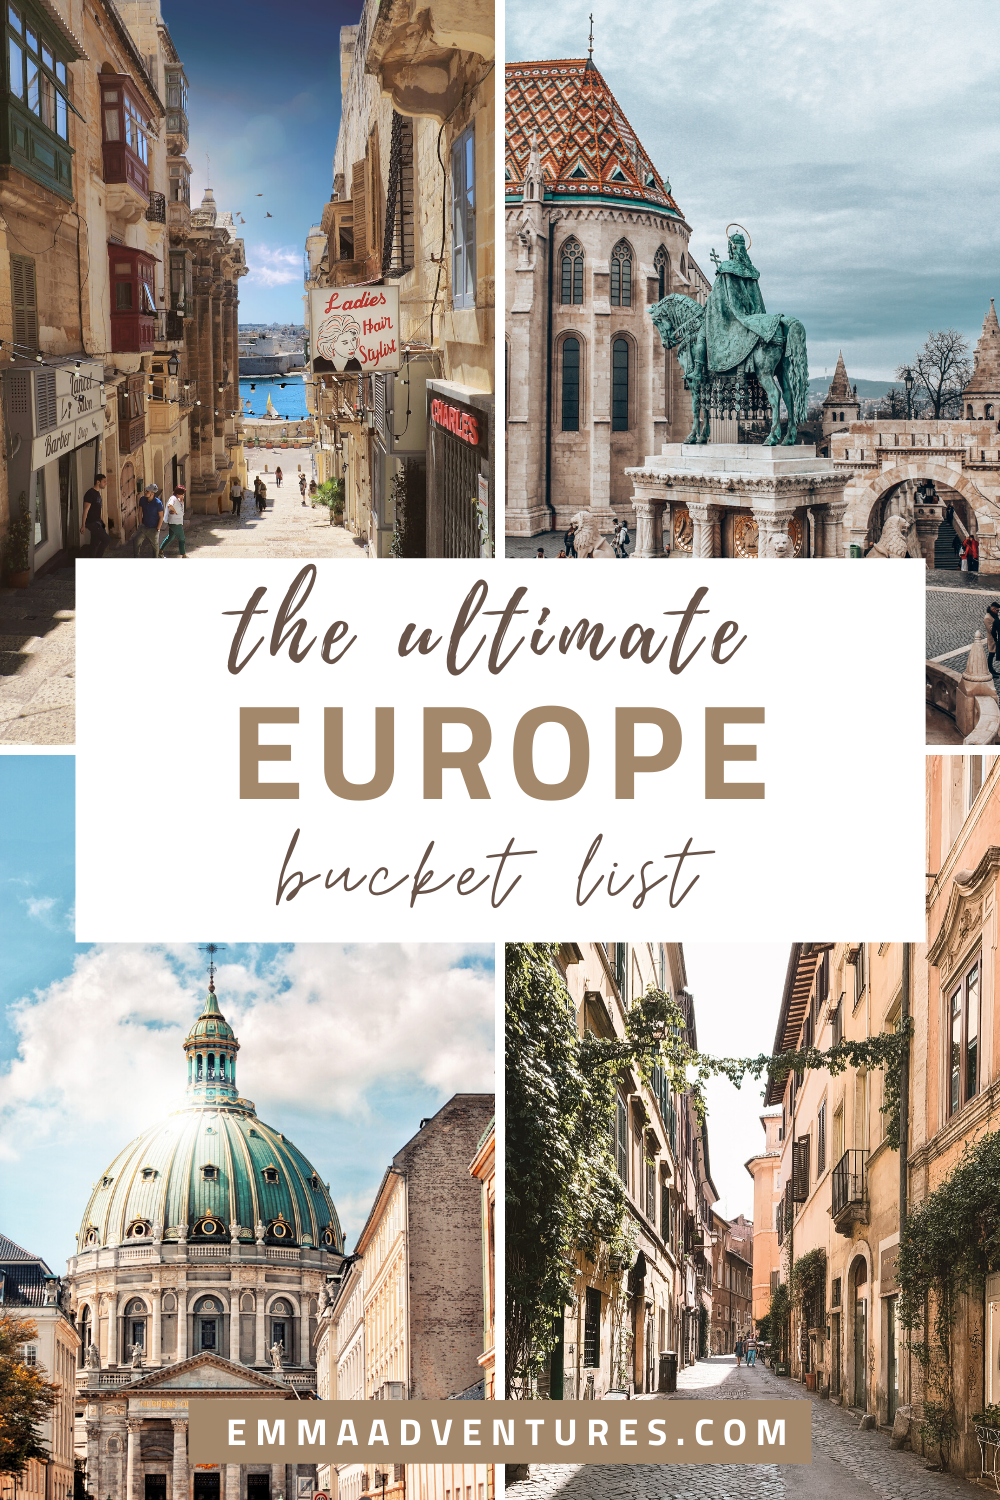 The ultimate Europe bucket list - places you have to see in Europe!